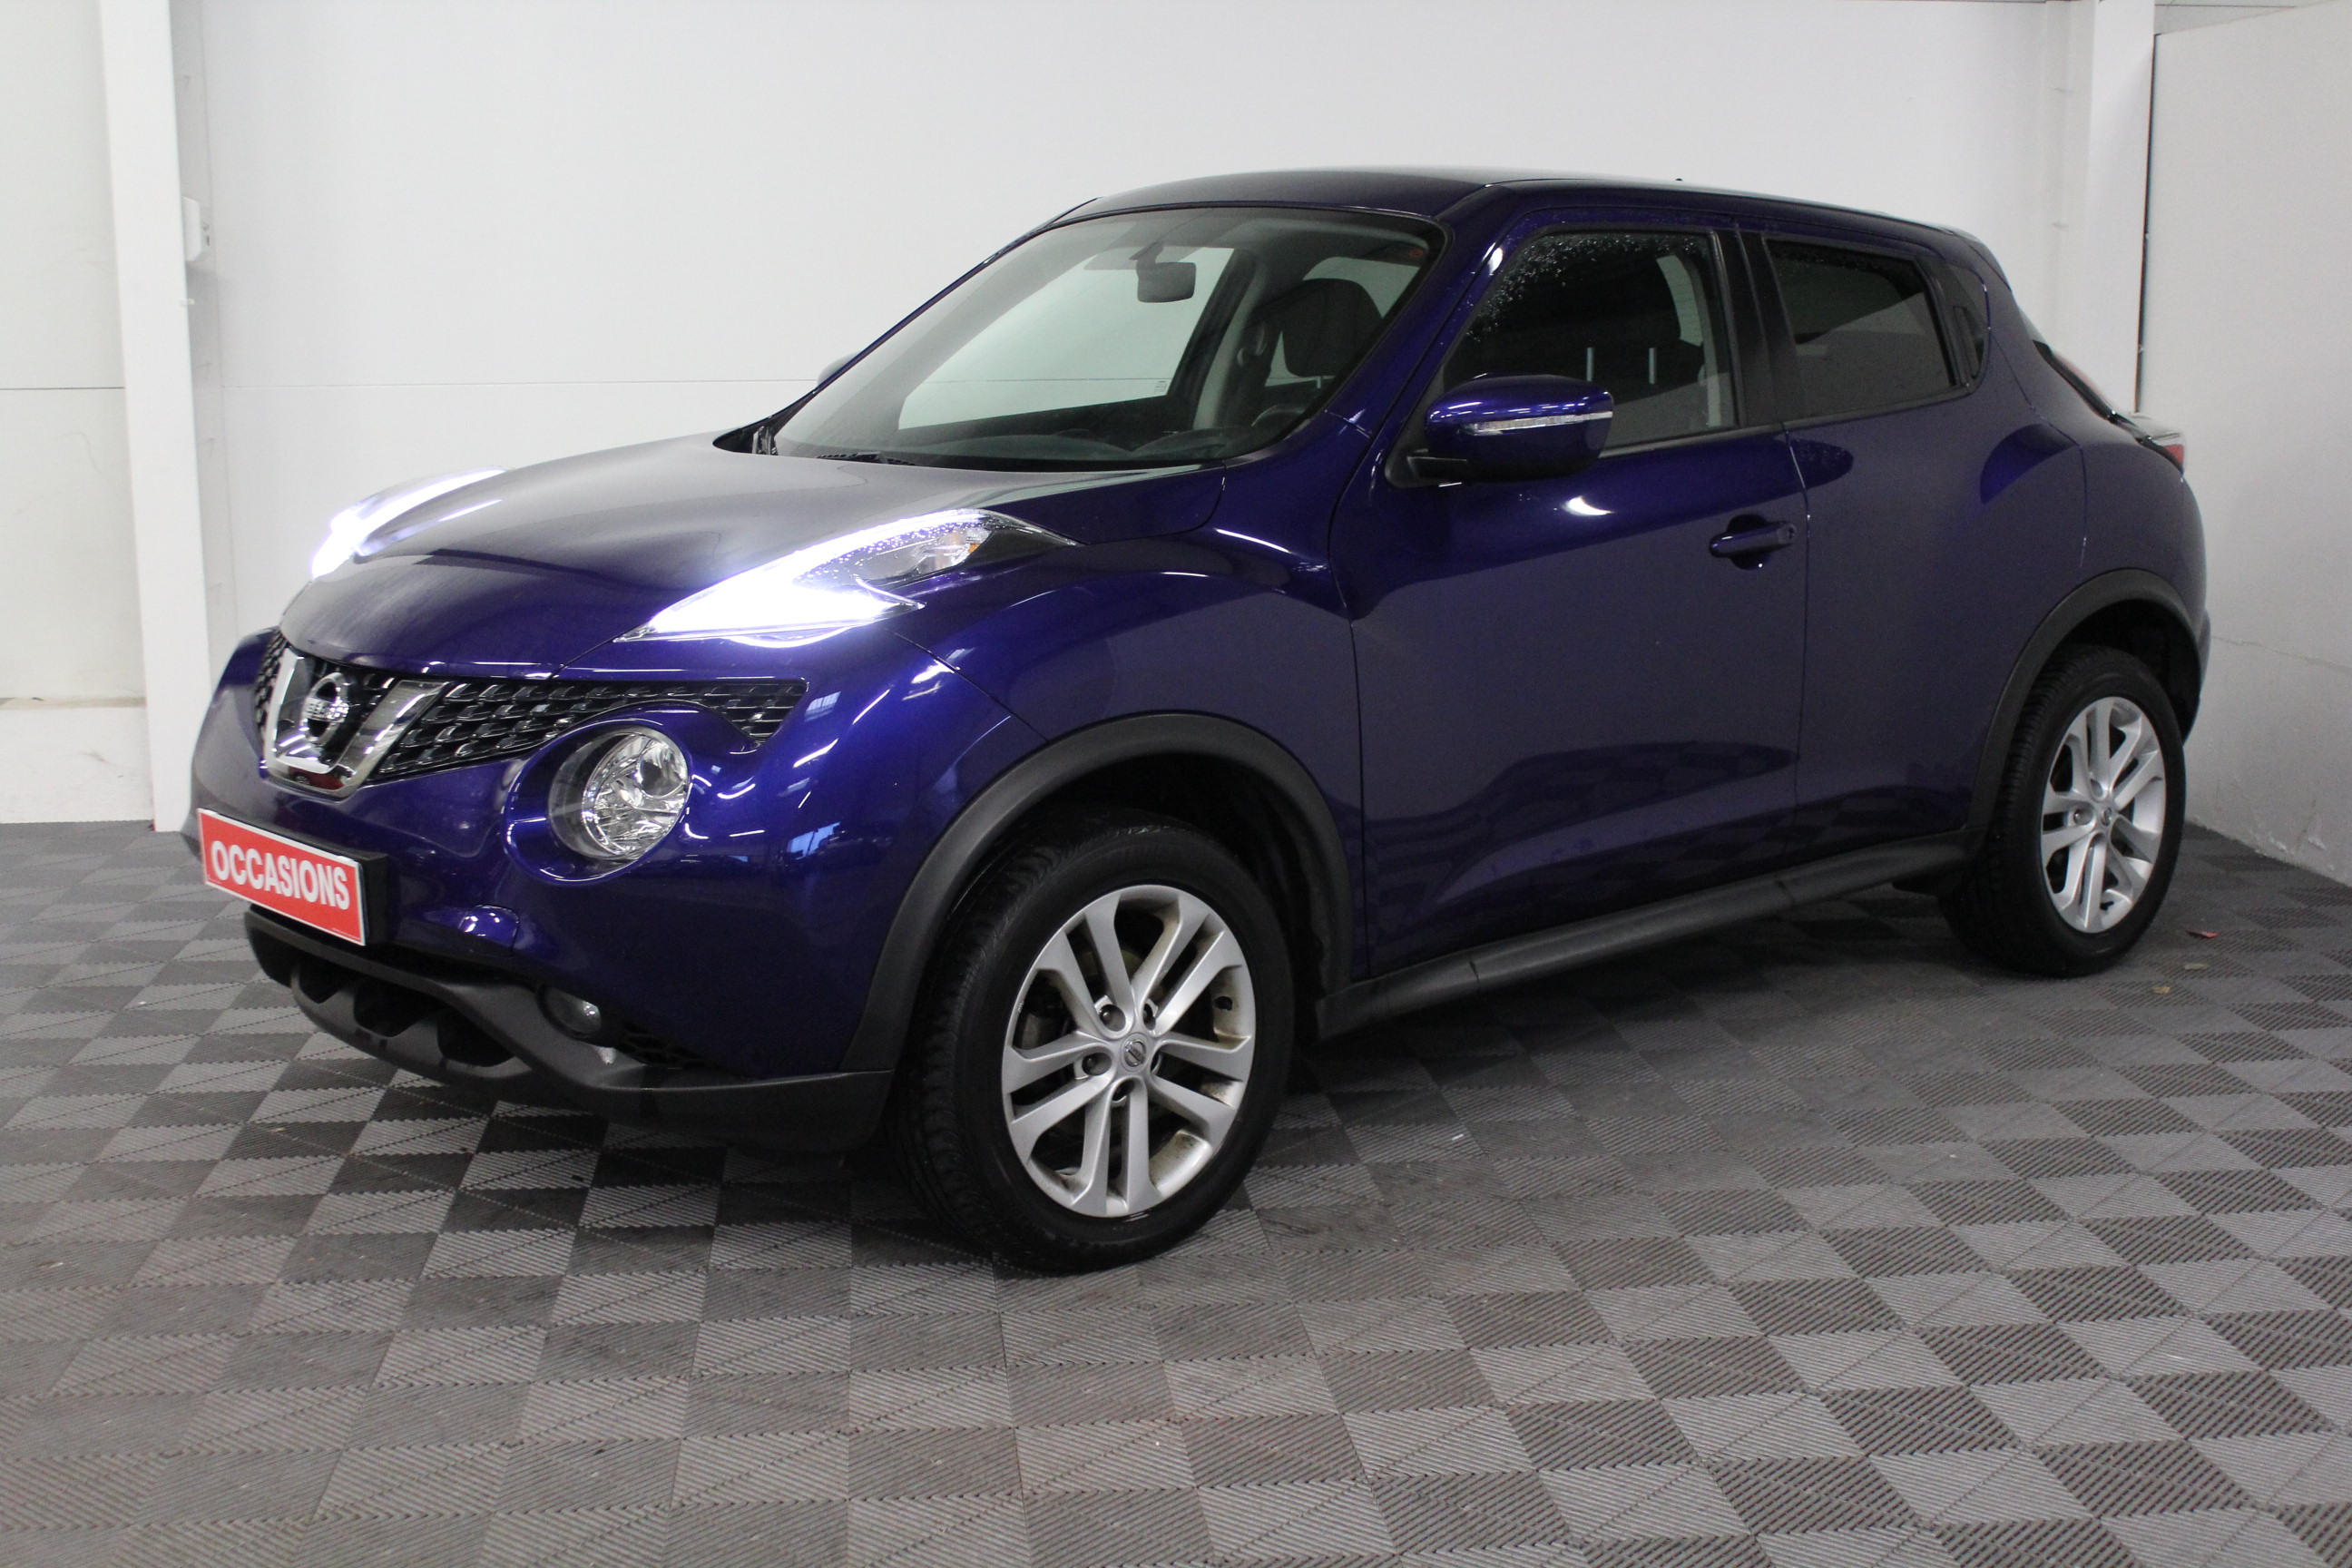 NISSAN JUKE 1.5 dCi 110 FAP Start/Stop System Visia Pack d'occasion